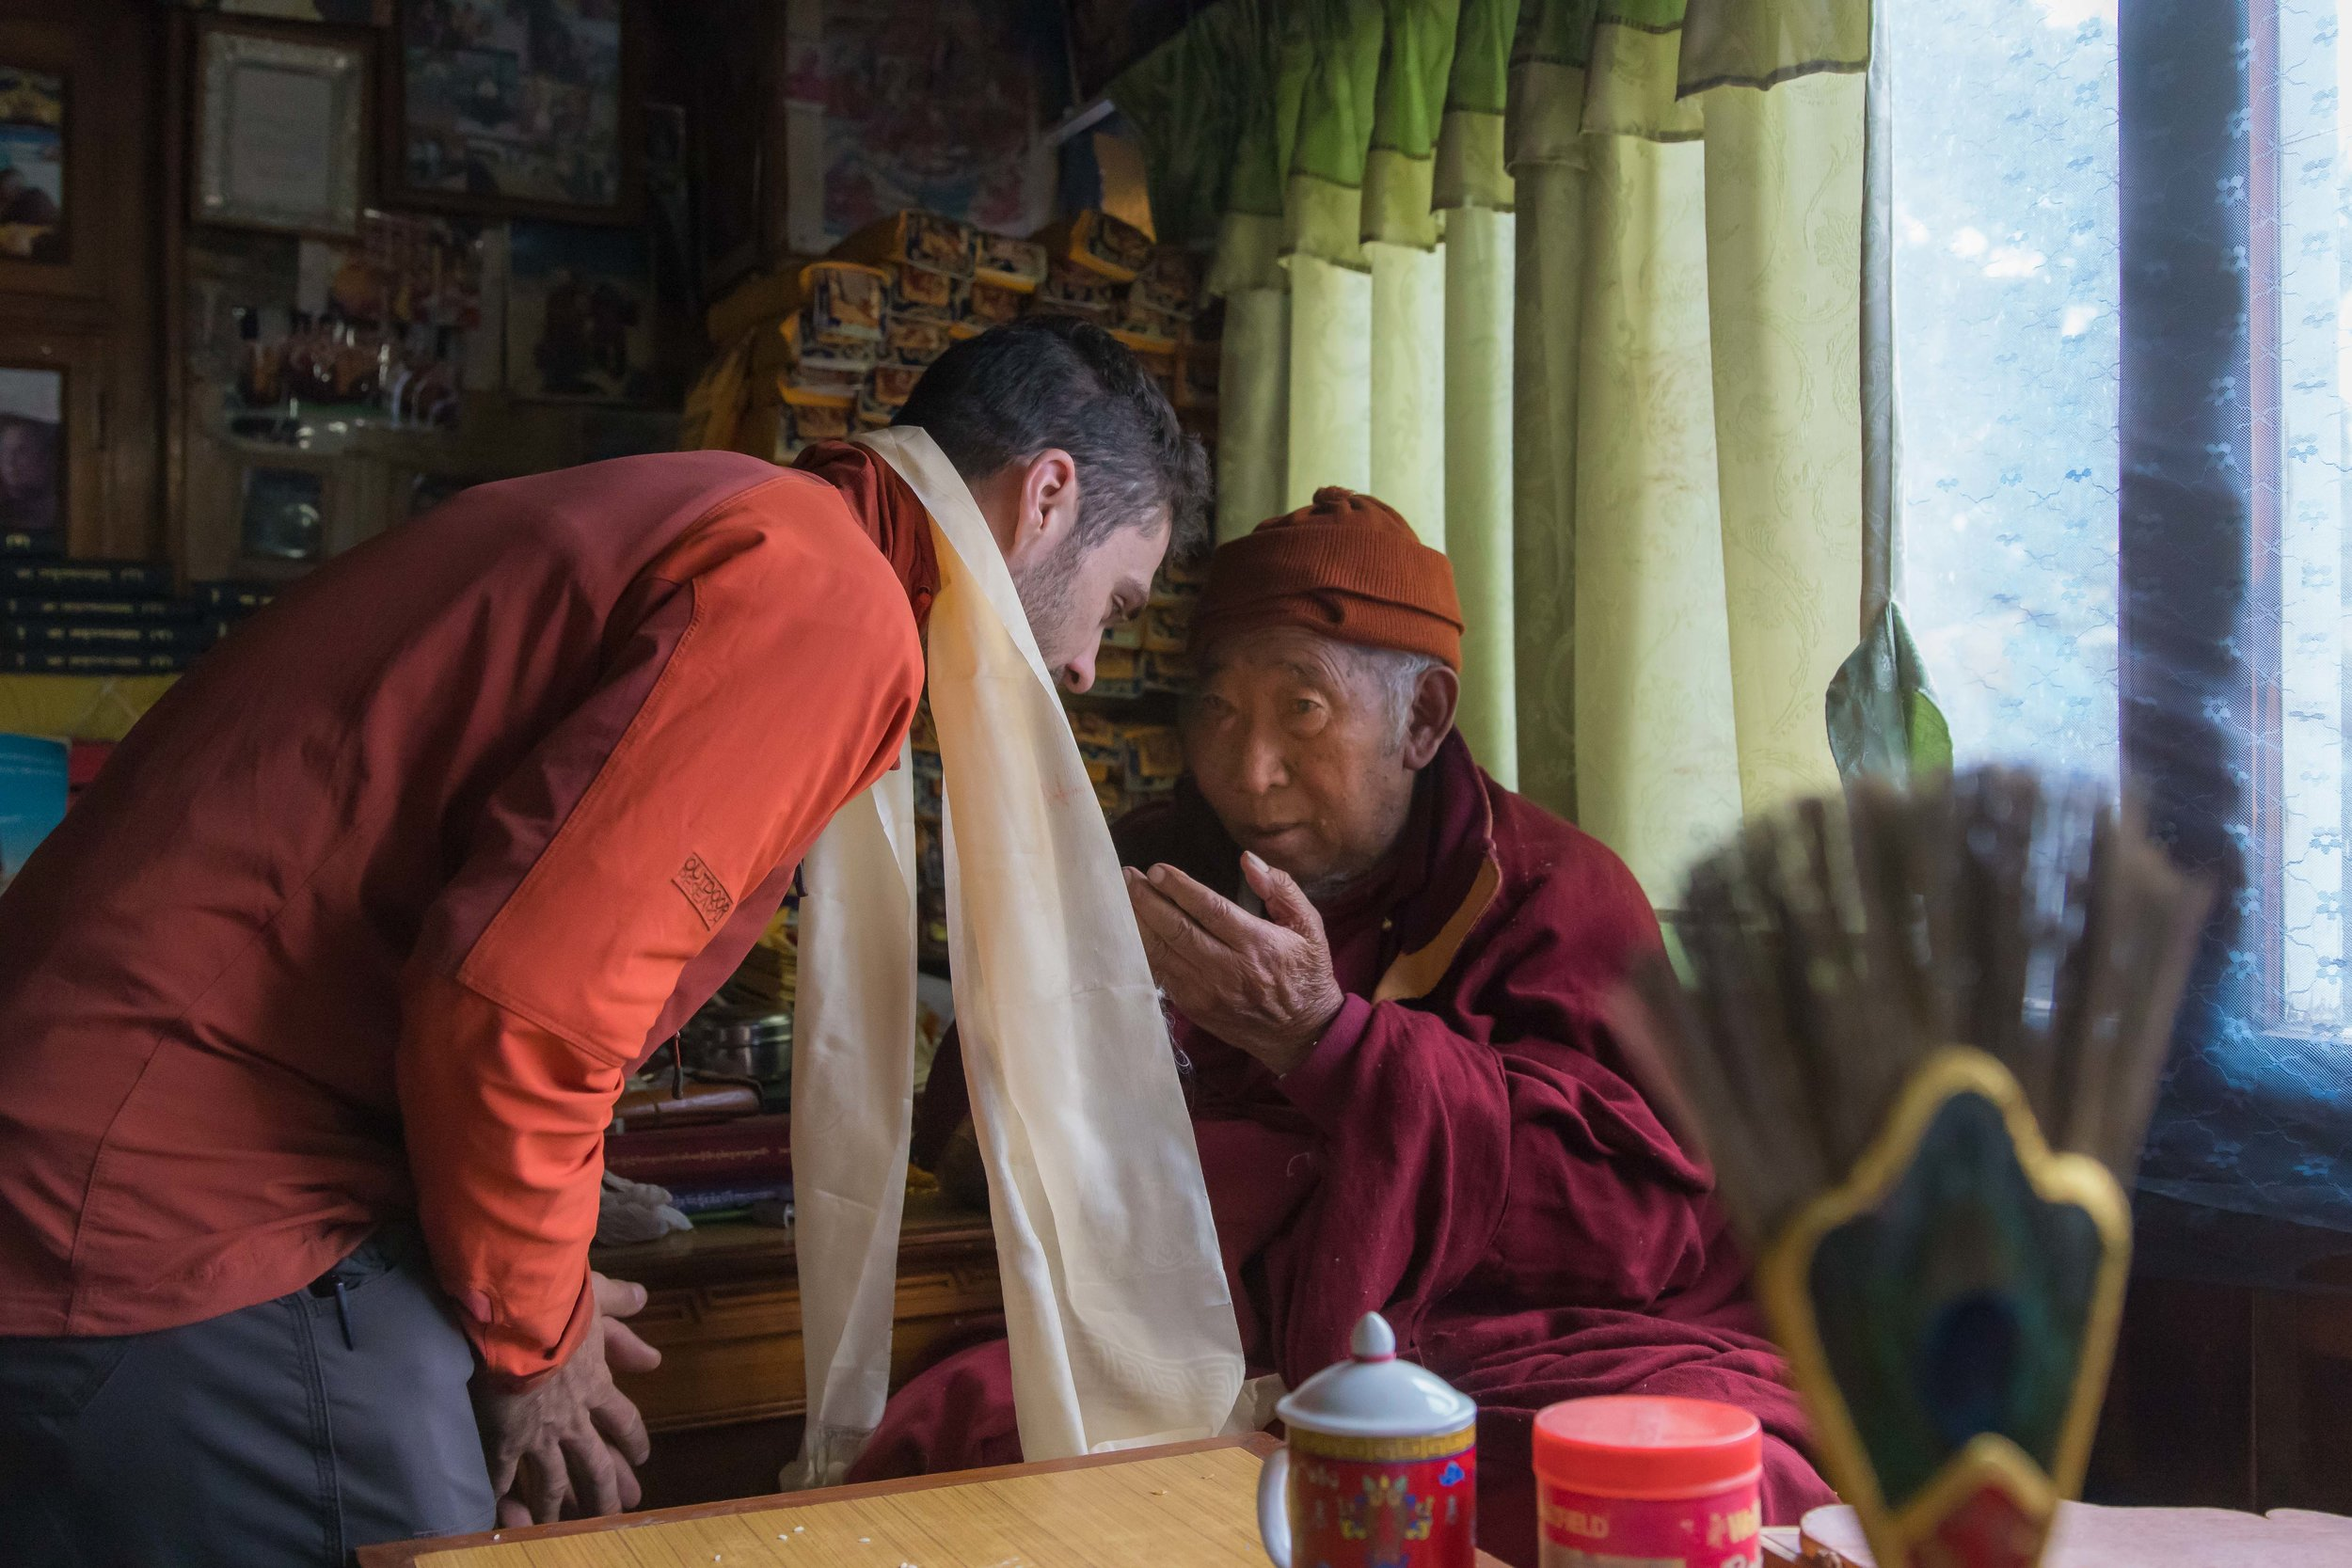 My blessing from Lama Geshe